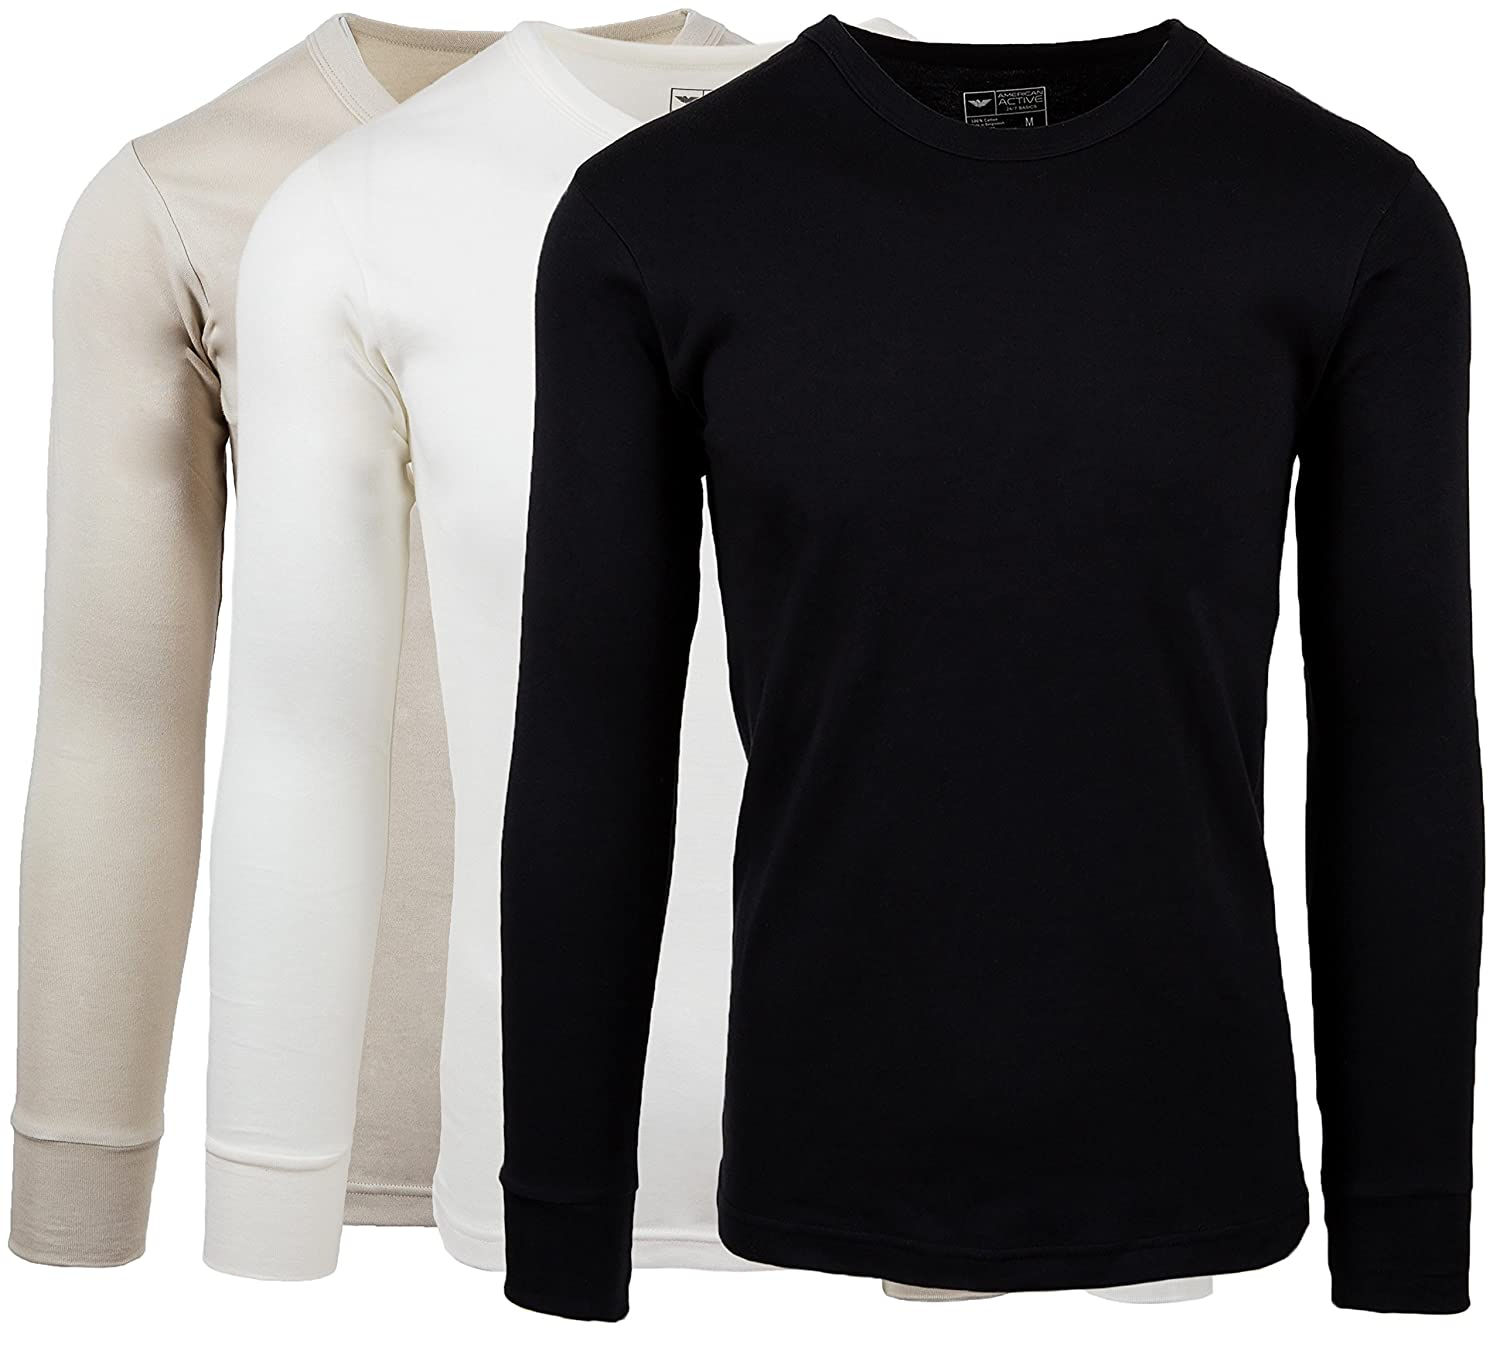 178c90aefb698 AMERICAN ACTIVE Men s 3 Pack 100% Cotton Fleece Lined Base Layer Long  Sleeve Thermal Crew Neck Shirt at Amazon Men s Clothing store